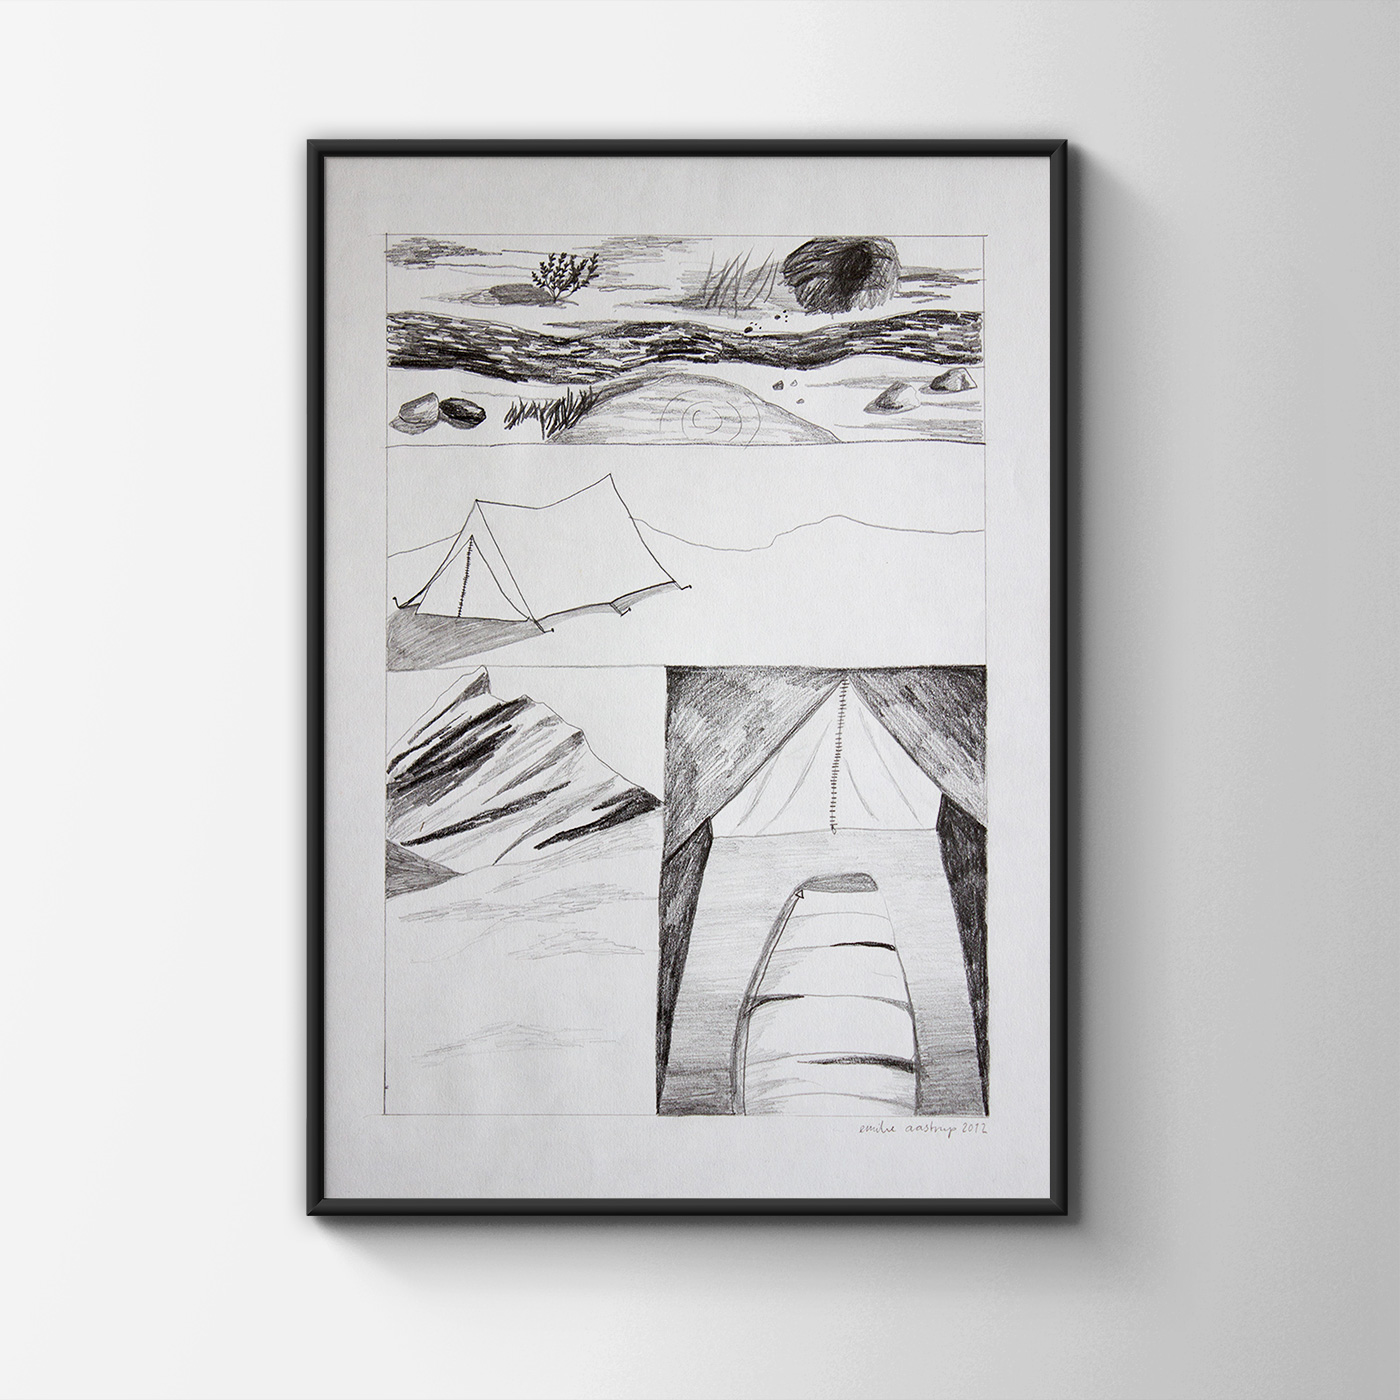 drawings, aesthetic, geometric, landscape, monochrome, architecture, botany, nature, black, grey, charcoal, paper, pencils, architectural, interior, interior-design, scenery, Buy original high quality art. Paintings, drawings, limited edition prints & posters by talented artists.